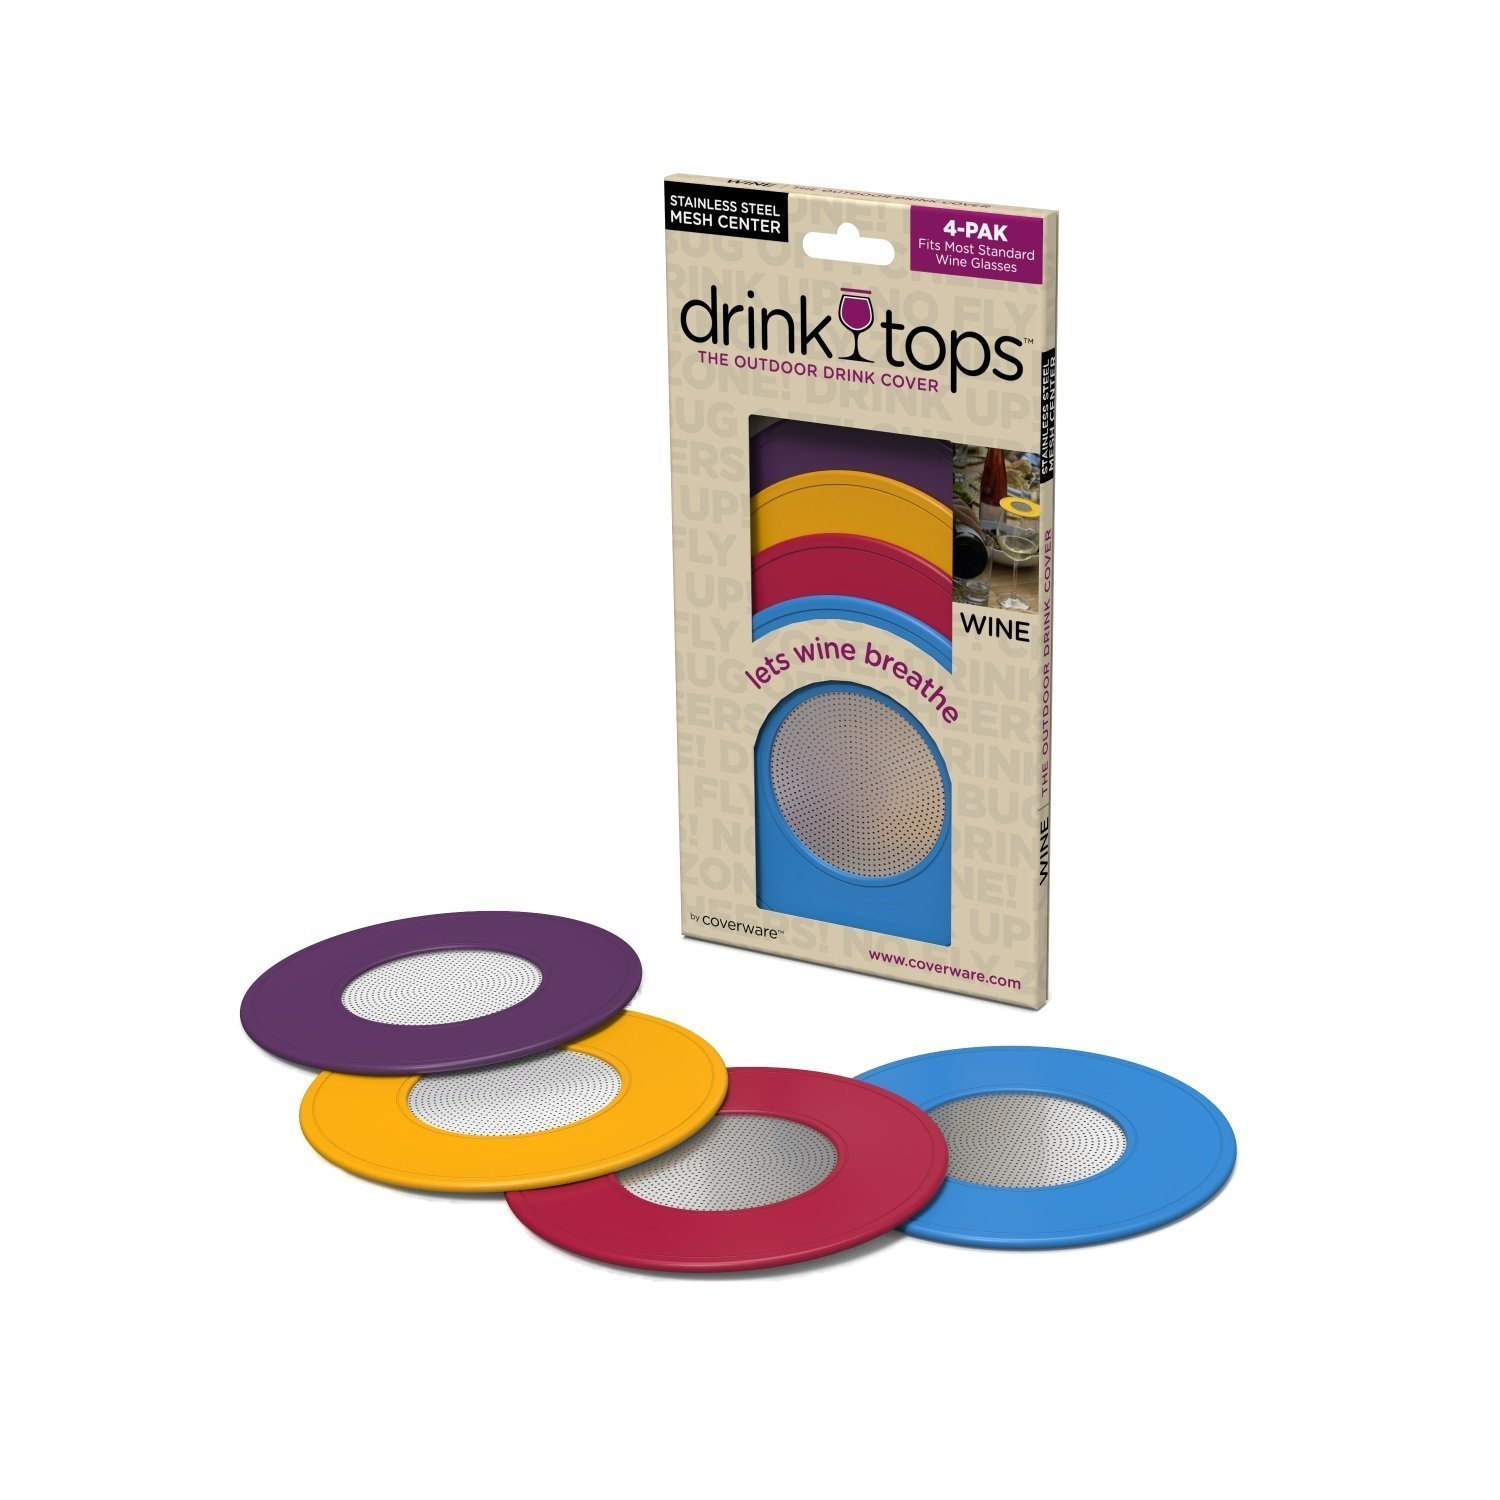 Drink Tops Outdoor Ventilated Wine Glass/Drink Covers, 4pk- Vintage Pinot, Perfect Way to Keep Bugs Out, Aromas In, and Reduce Splashing